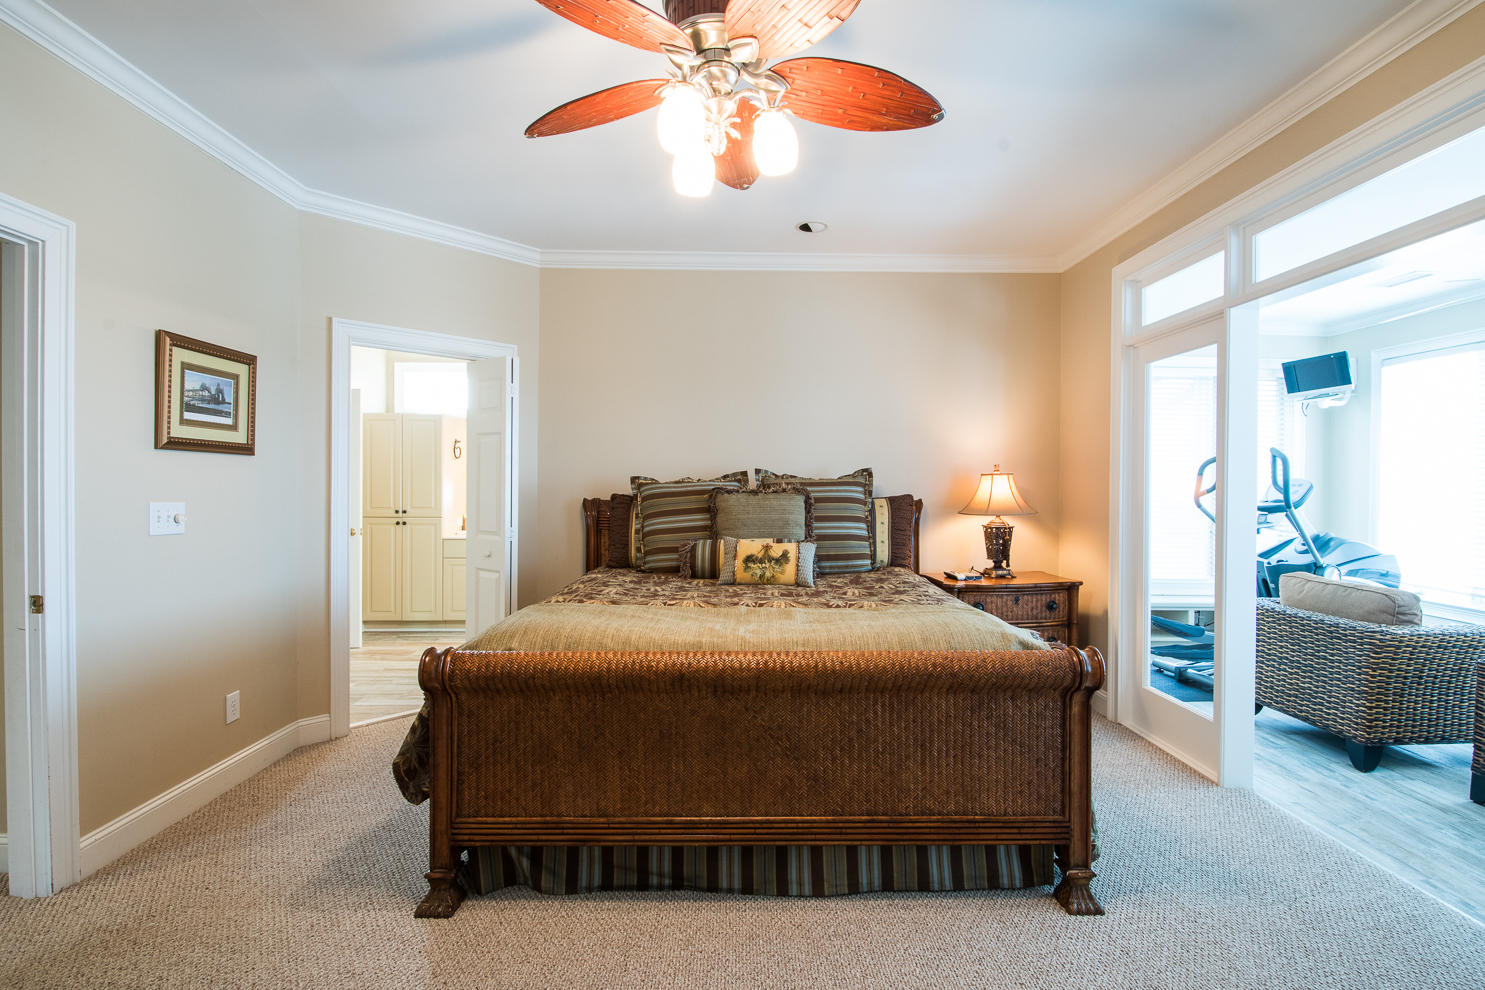 Tolers Cove Homes For Sale - B-4 & B-5 Tolers Cove Marina 70ft + Home, Mount Pleasant, SC - 18